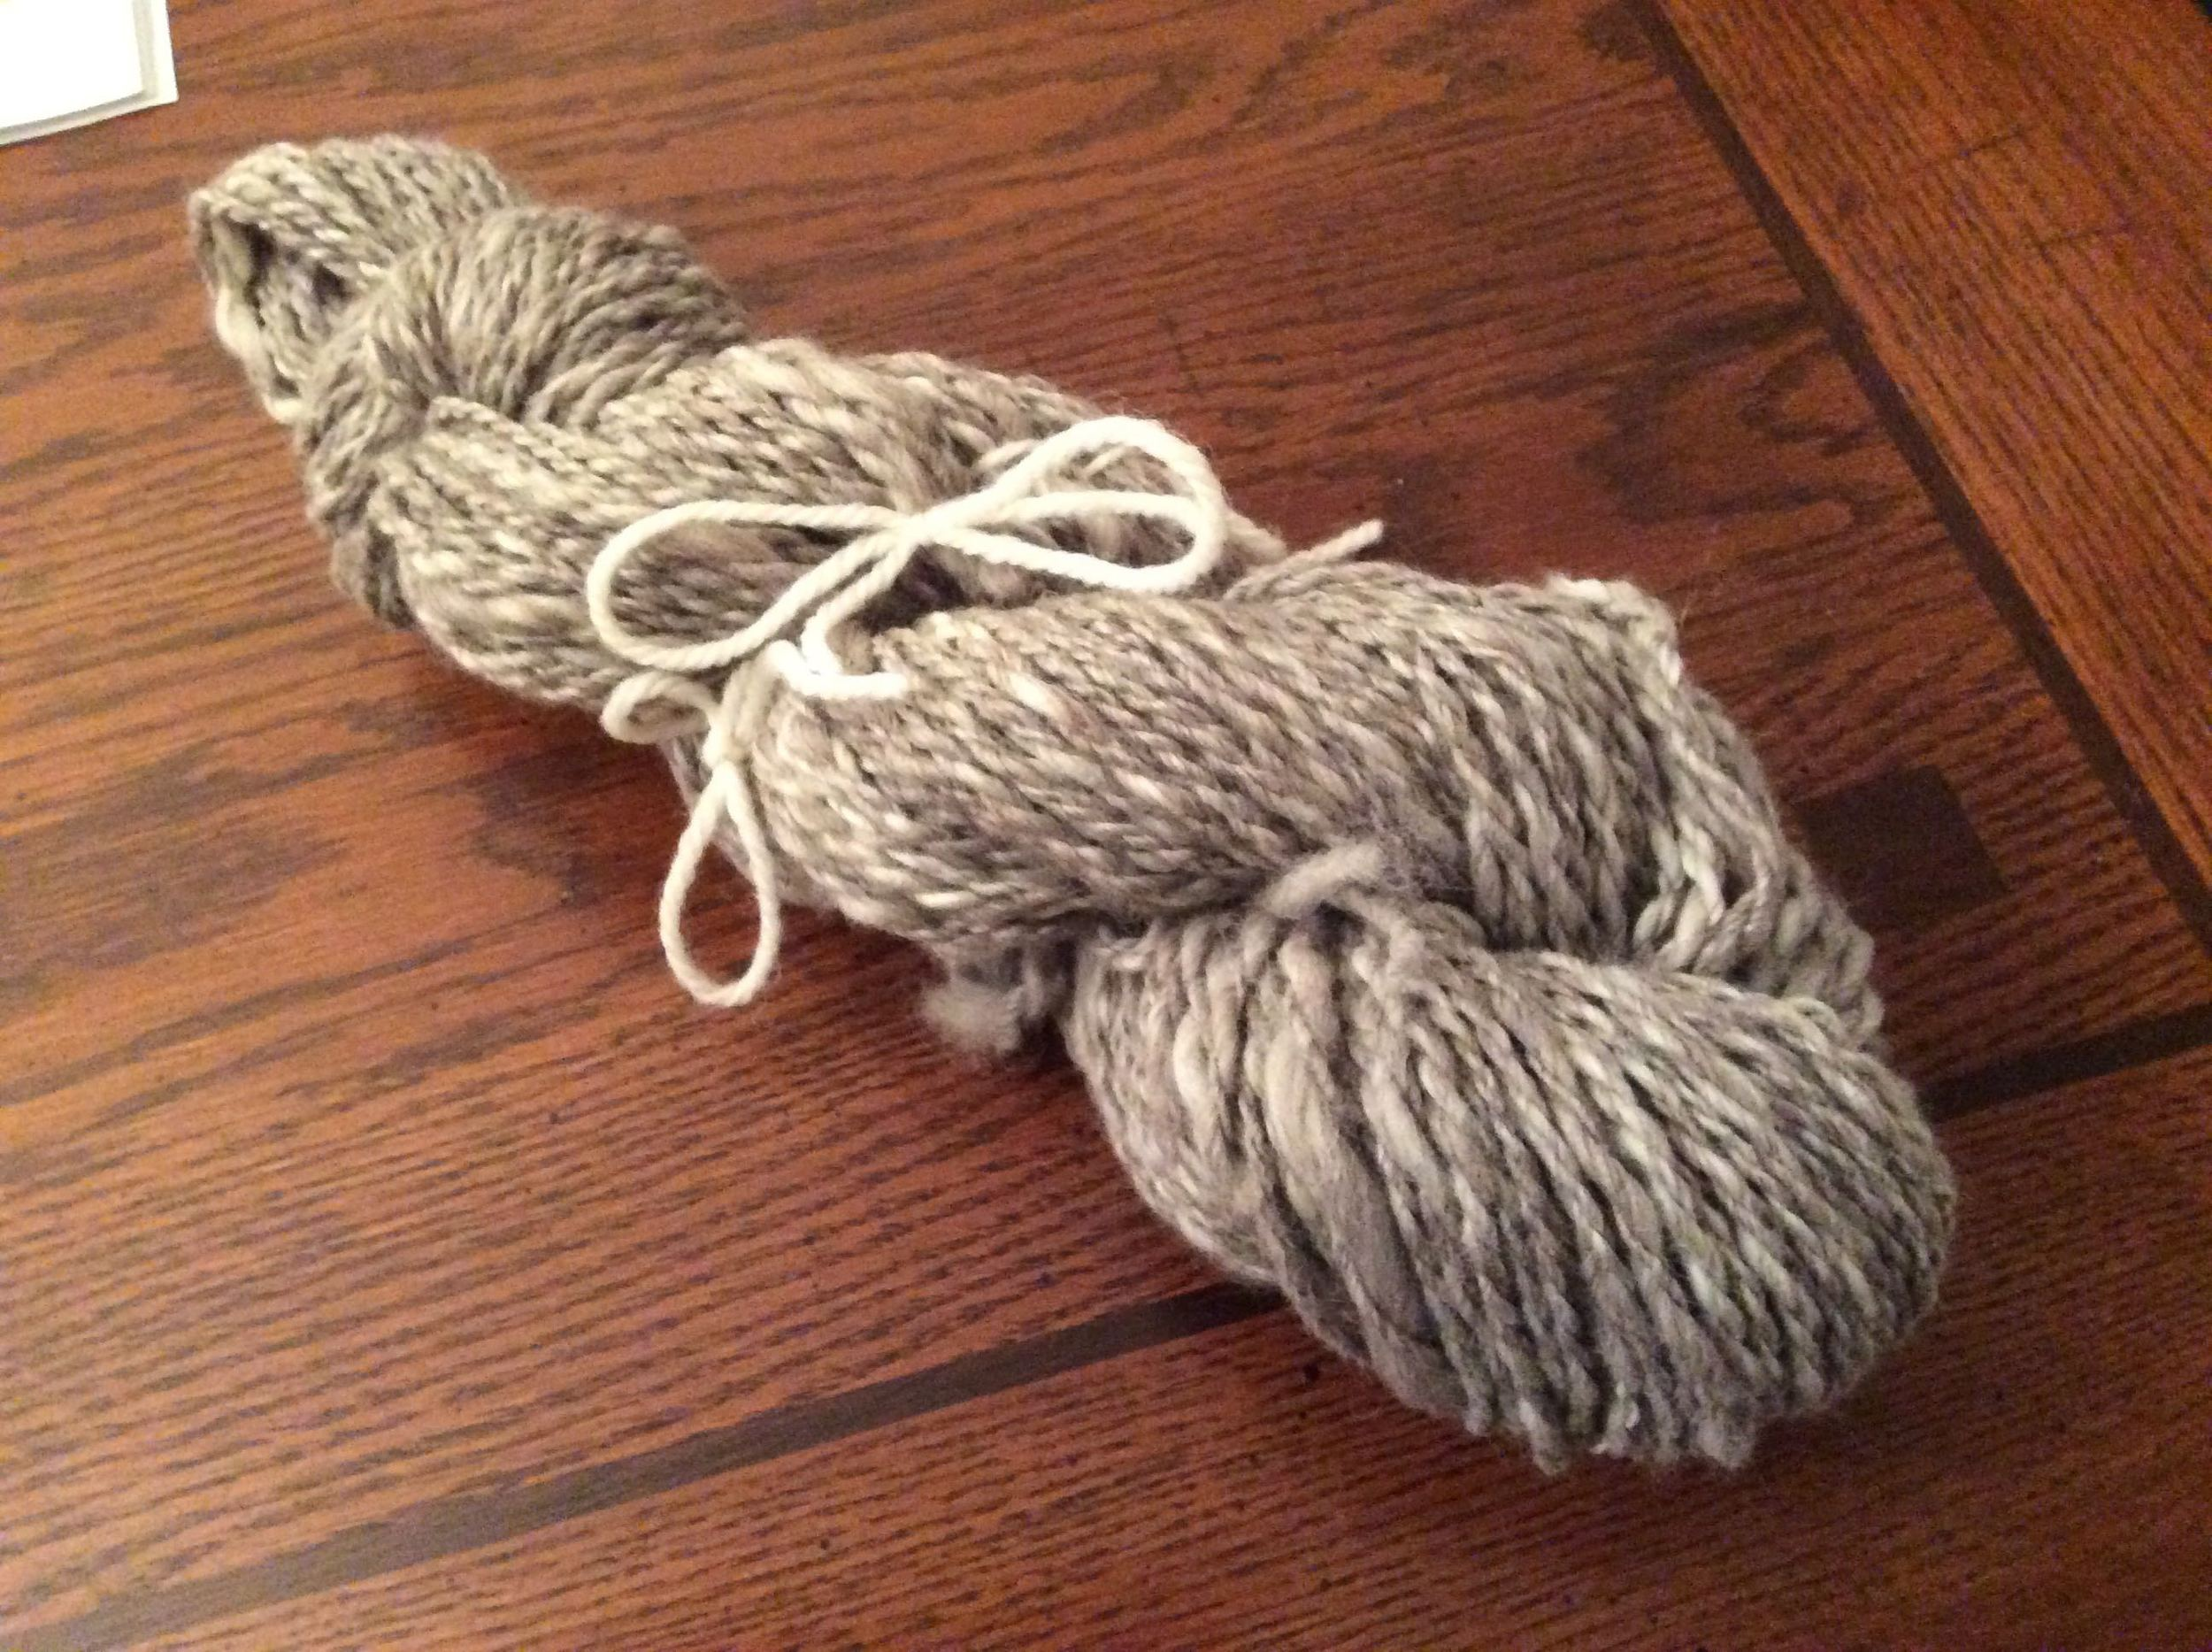 The finished yarn, but not yet washed. 136 yards of 70/30 2-ply alpaca/Merino yarn, in worsted weight.